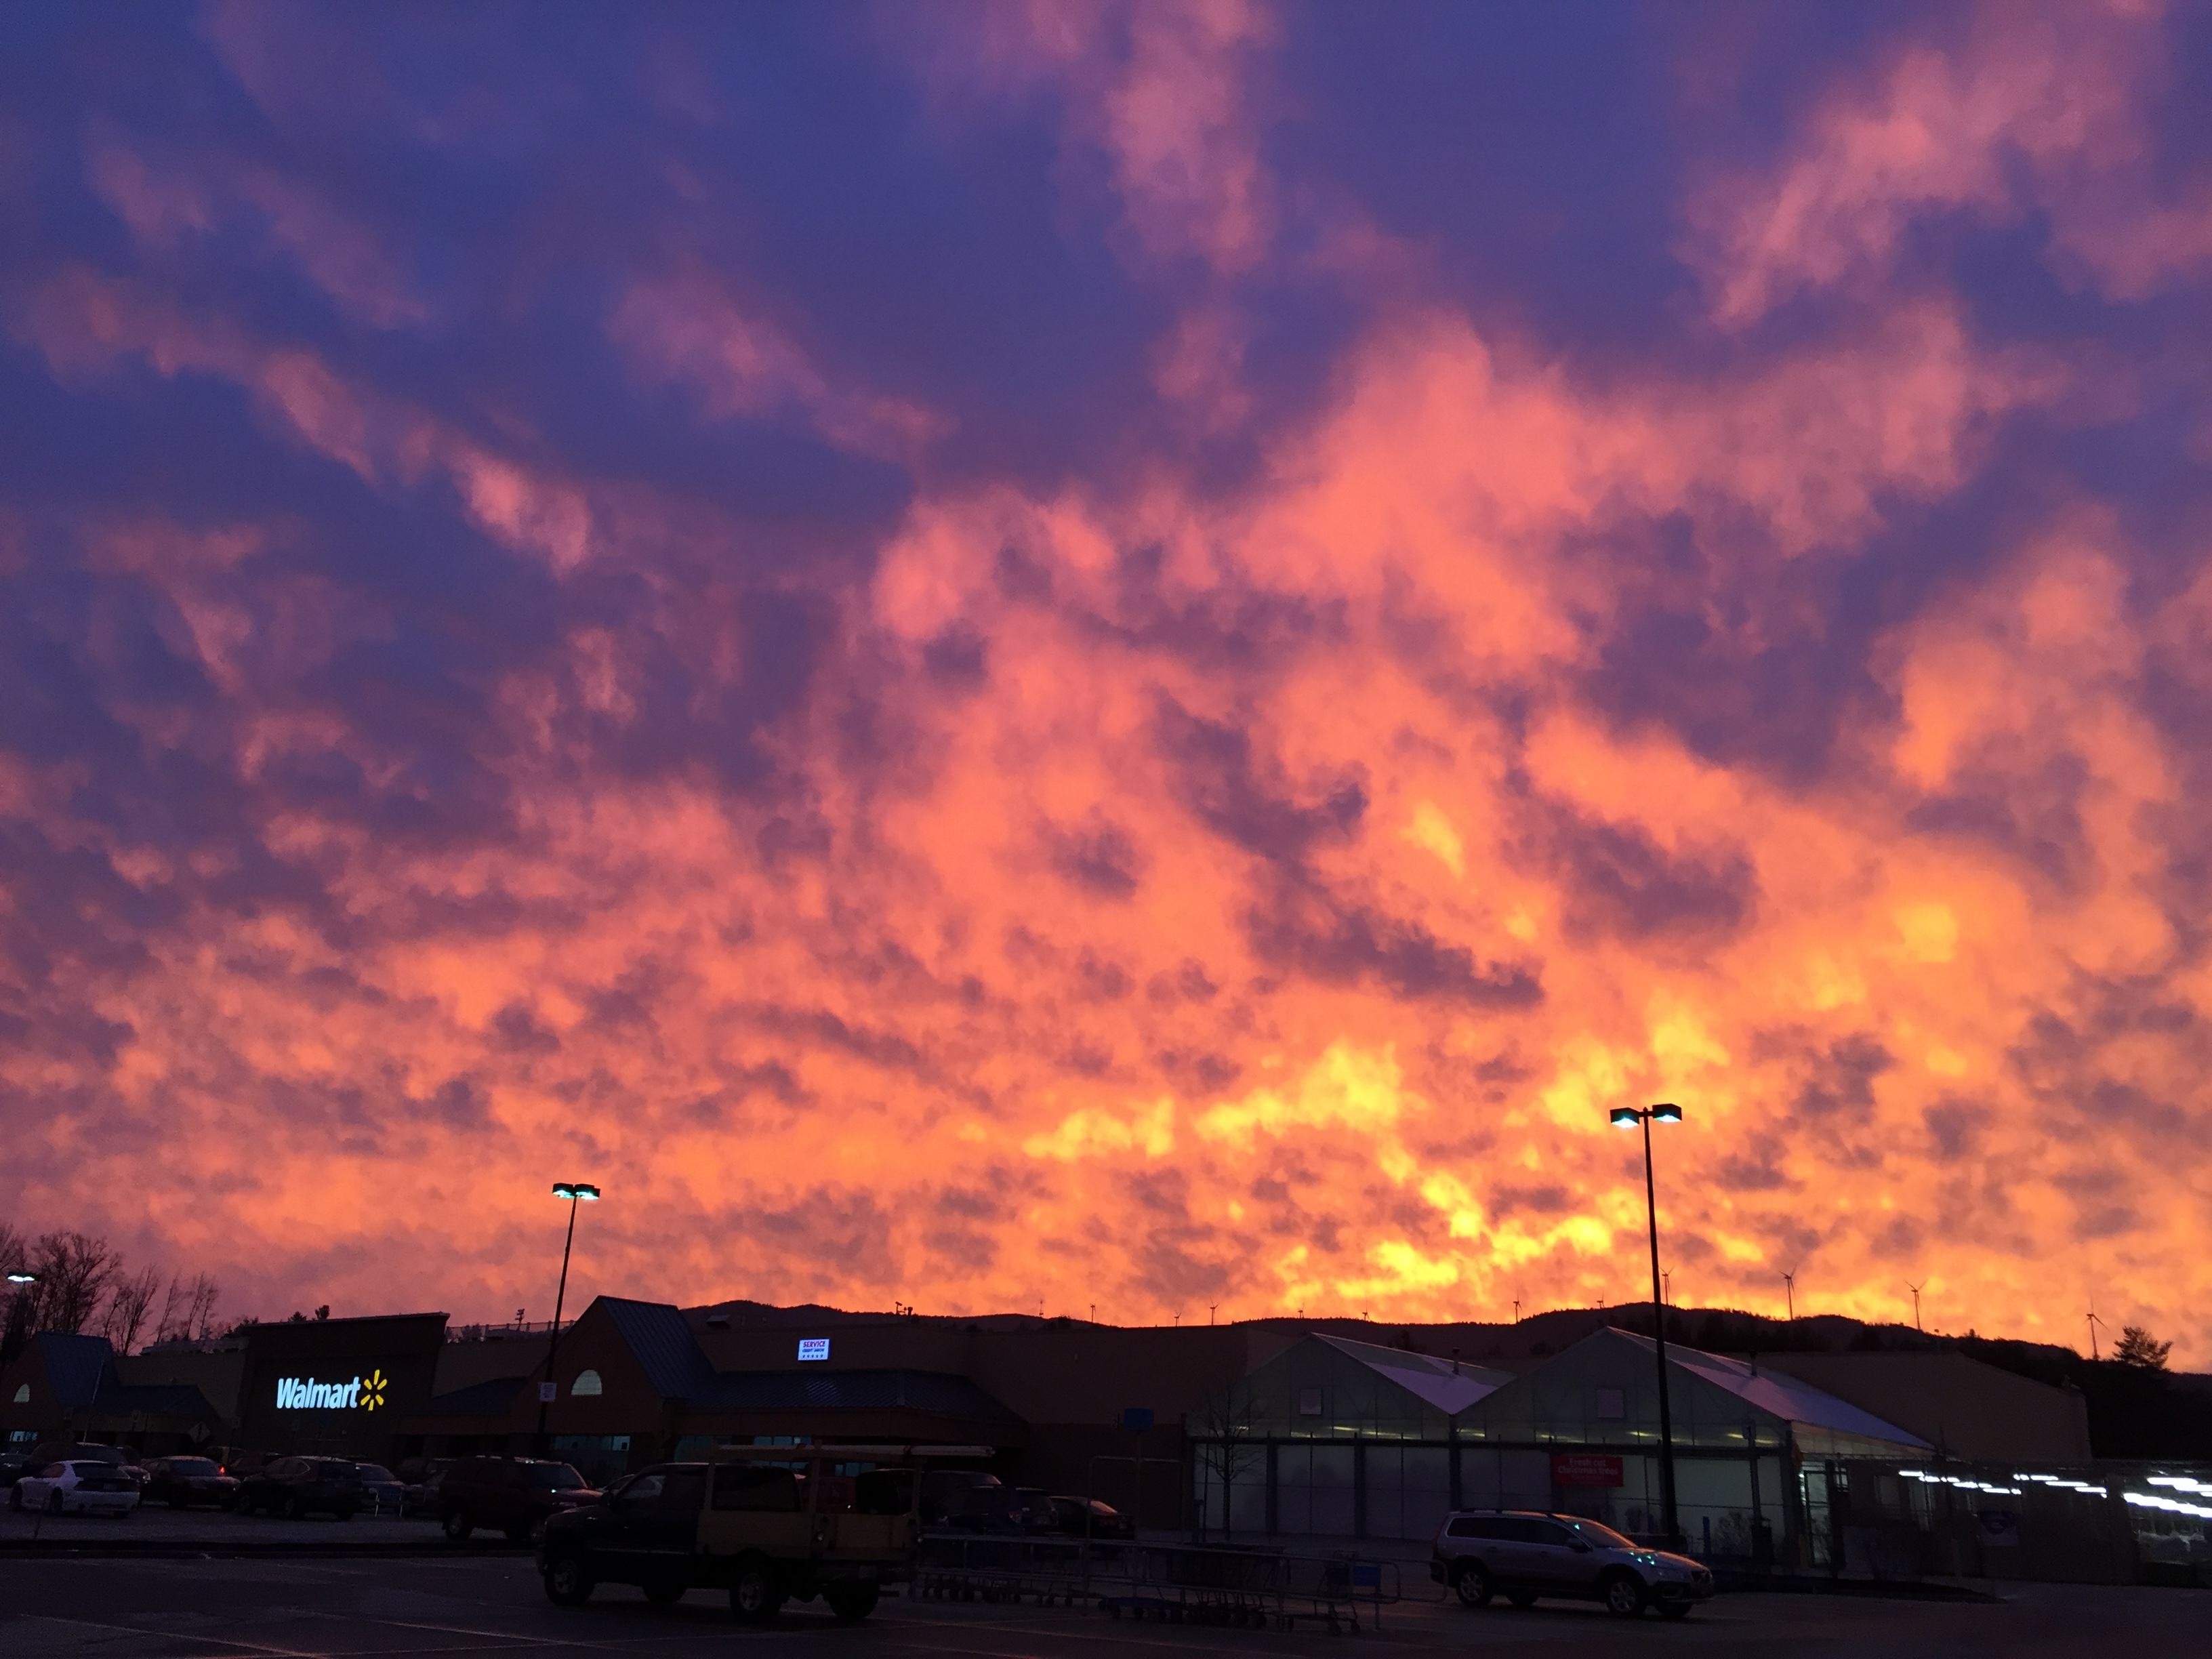 File:Plymouth NH Sunset over Walmart JPG - Wikimedia Commons